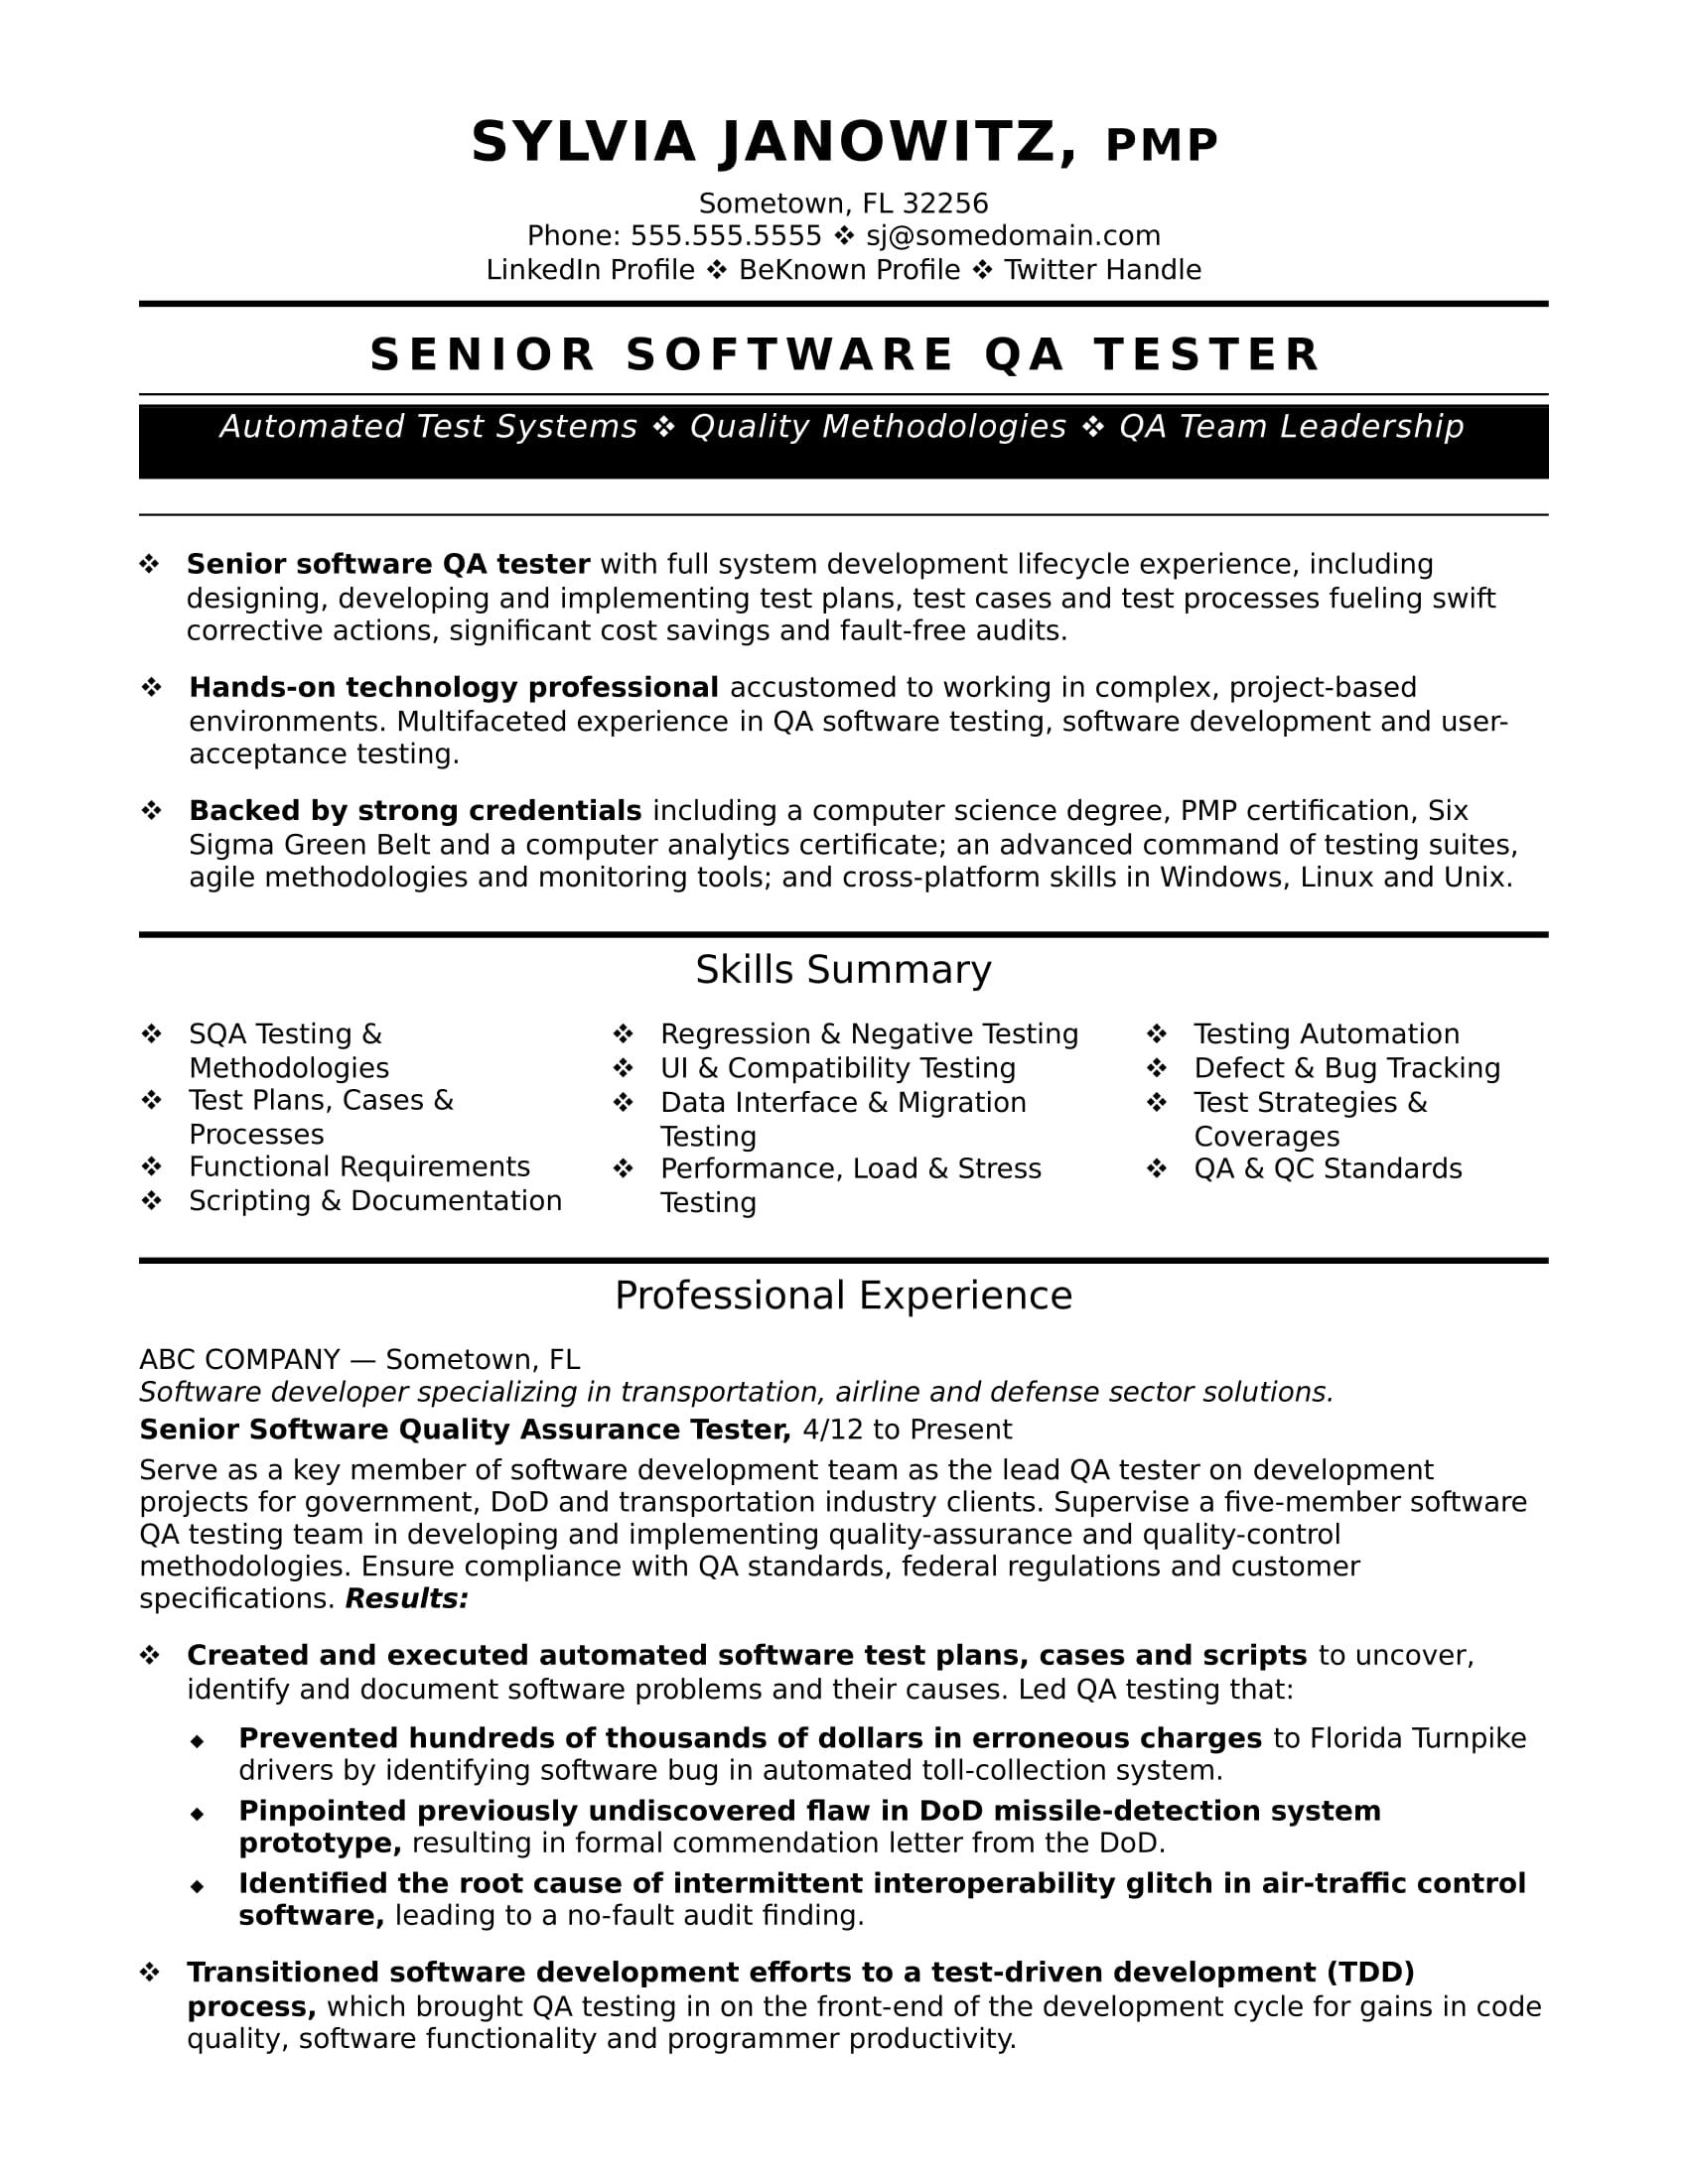 Qa Sample Resume For Qa Tester  Sample Resume Sample Resume Templates And Template